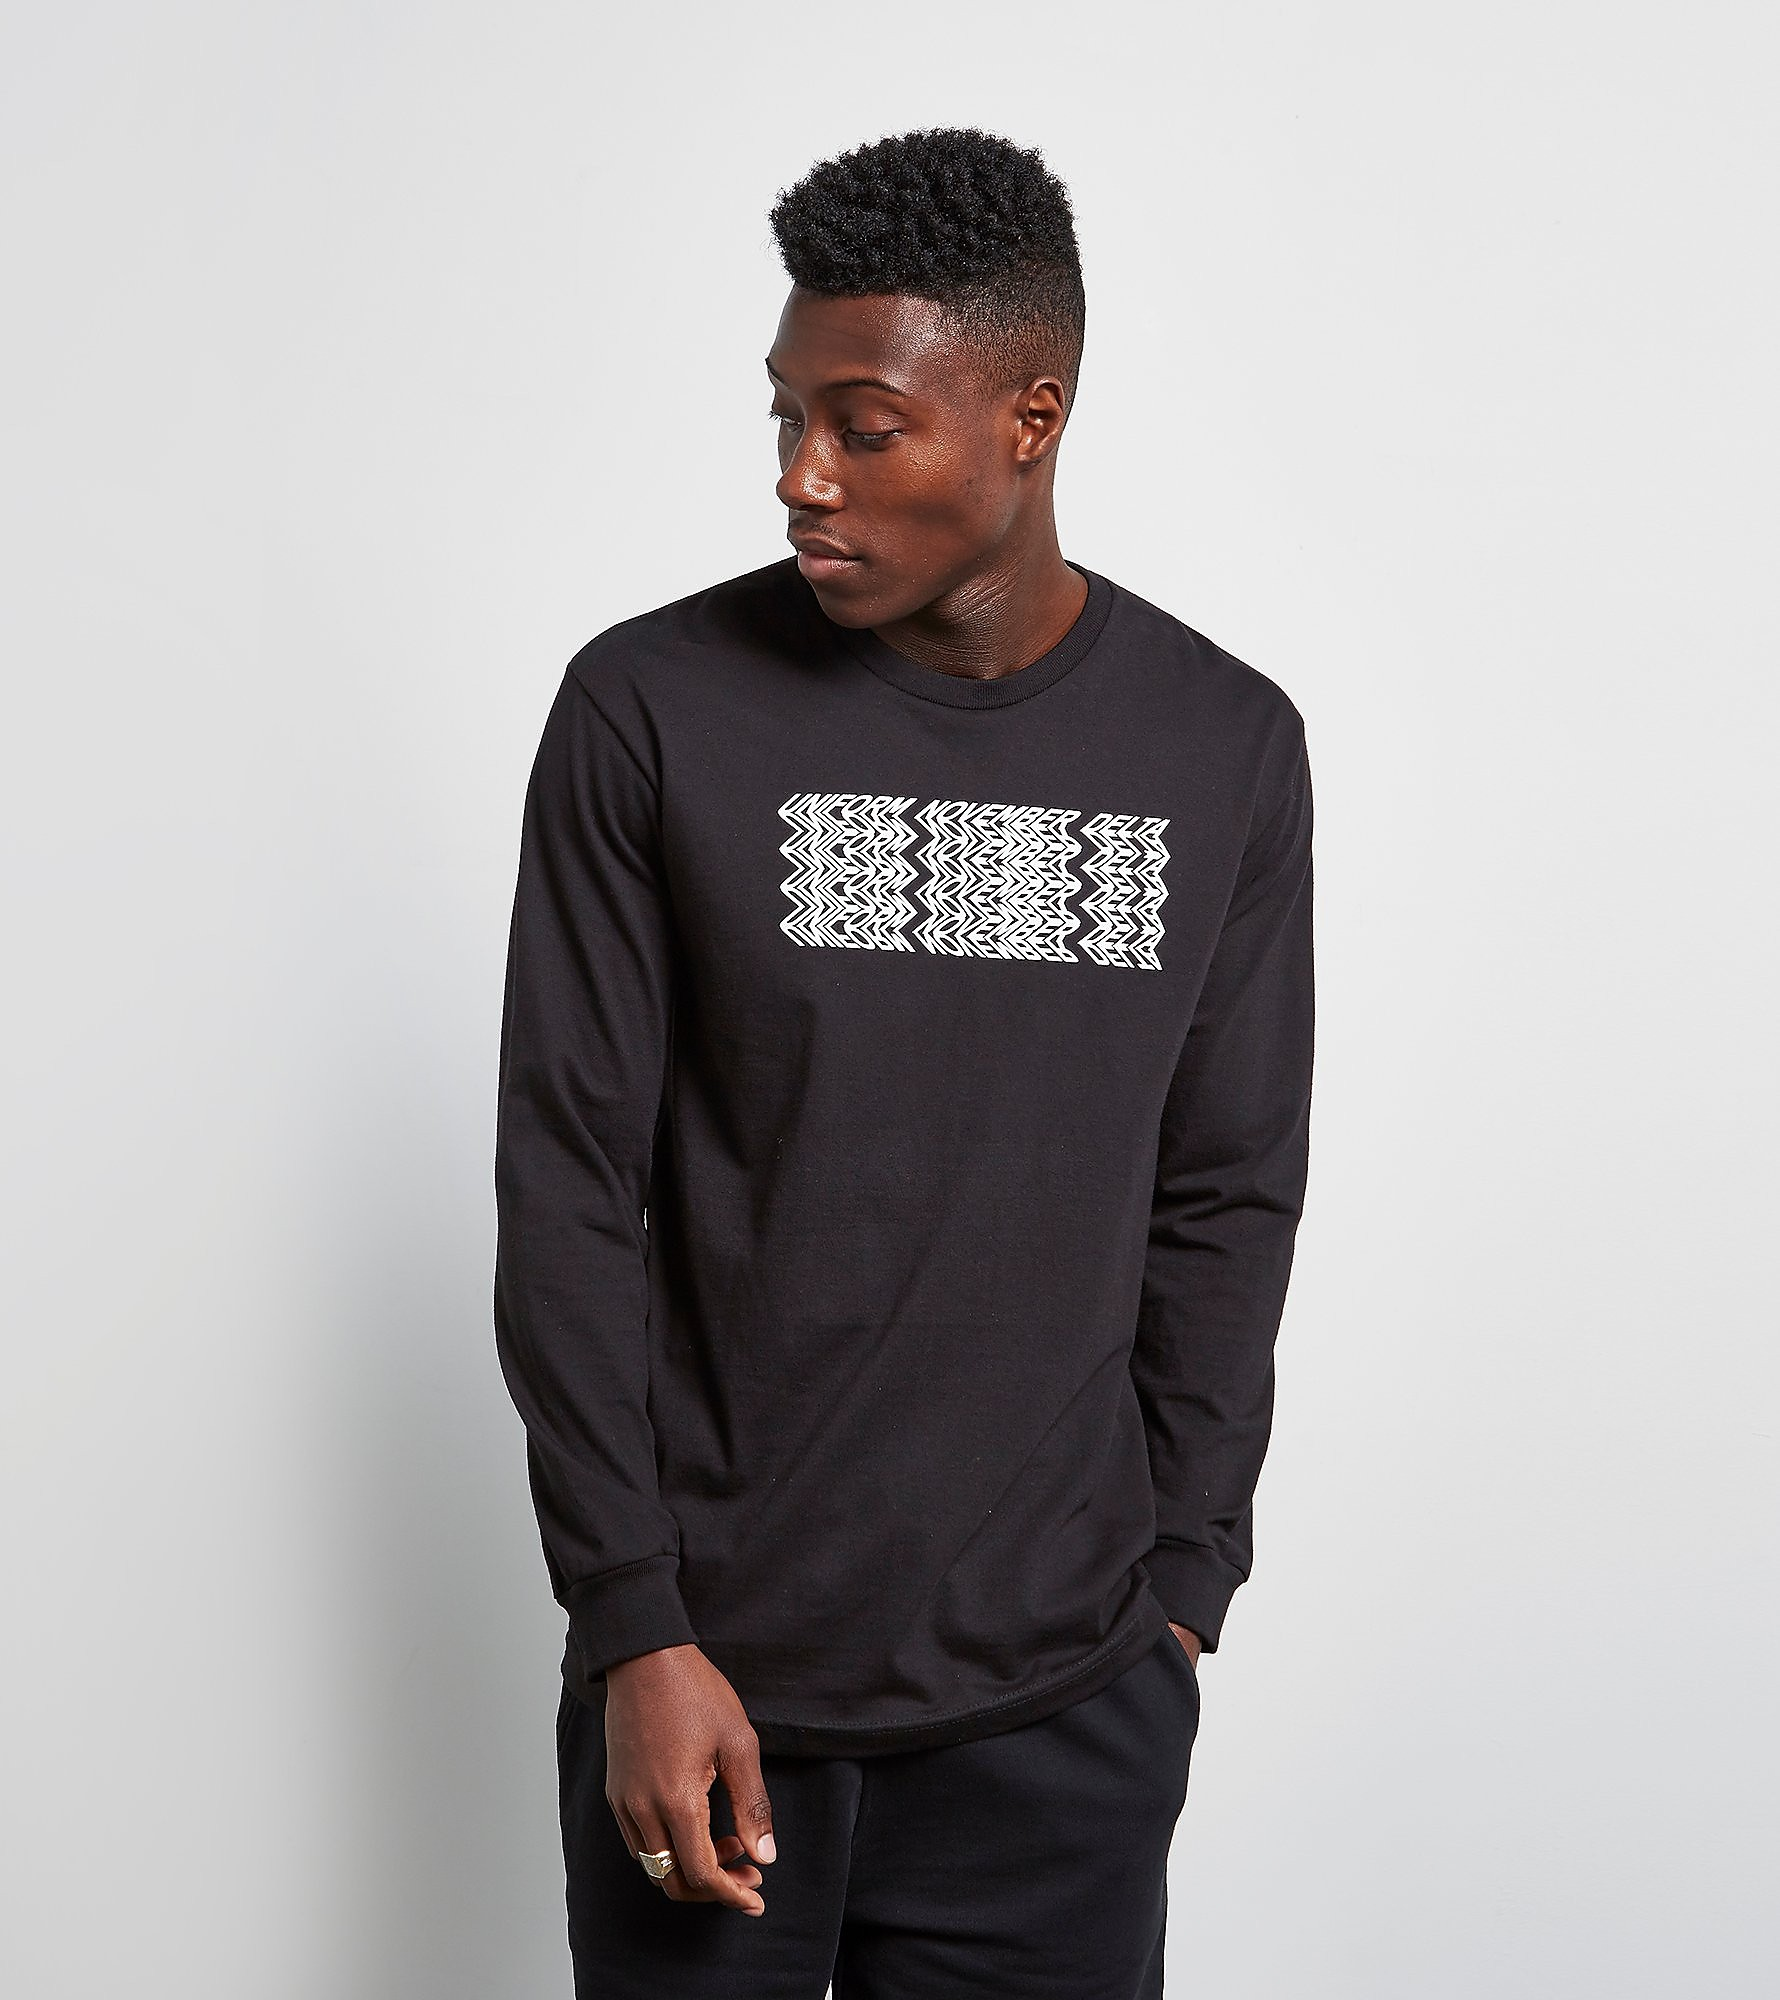 Undefeated Long-Sleeved Perpetl T-Shirt